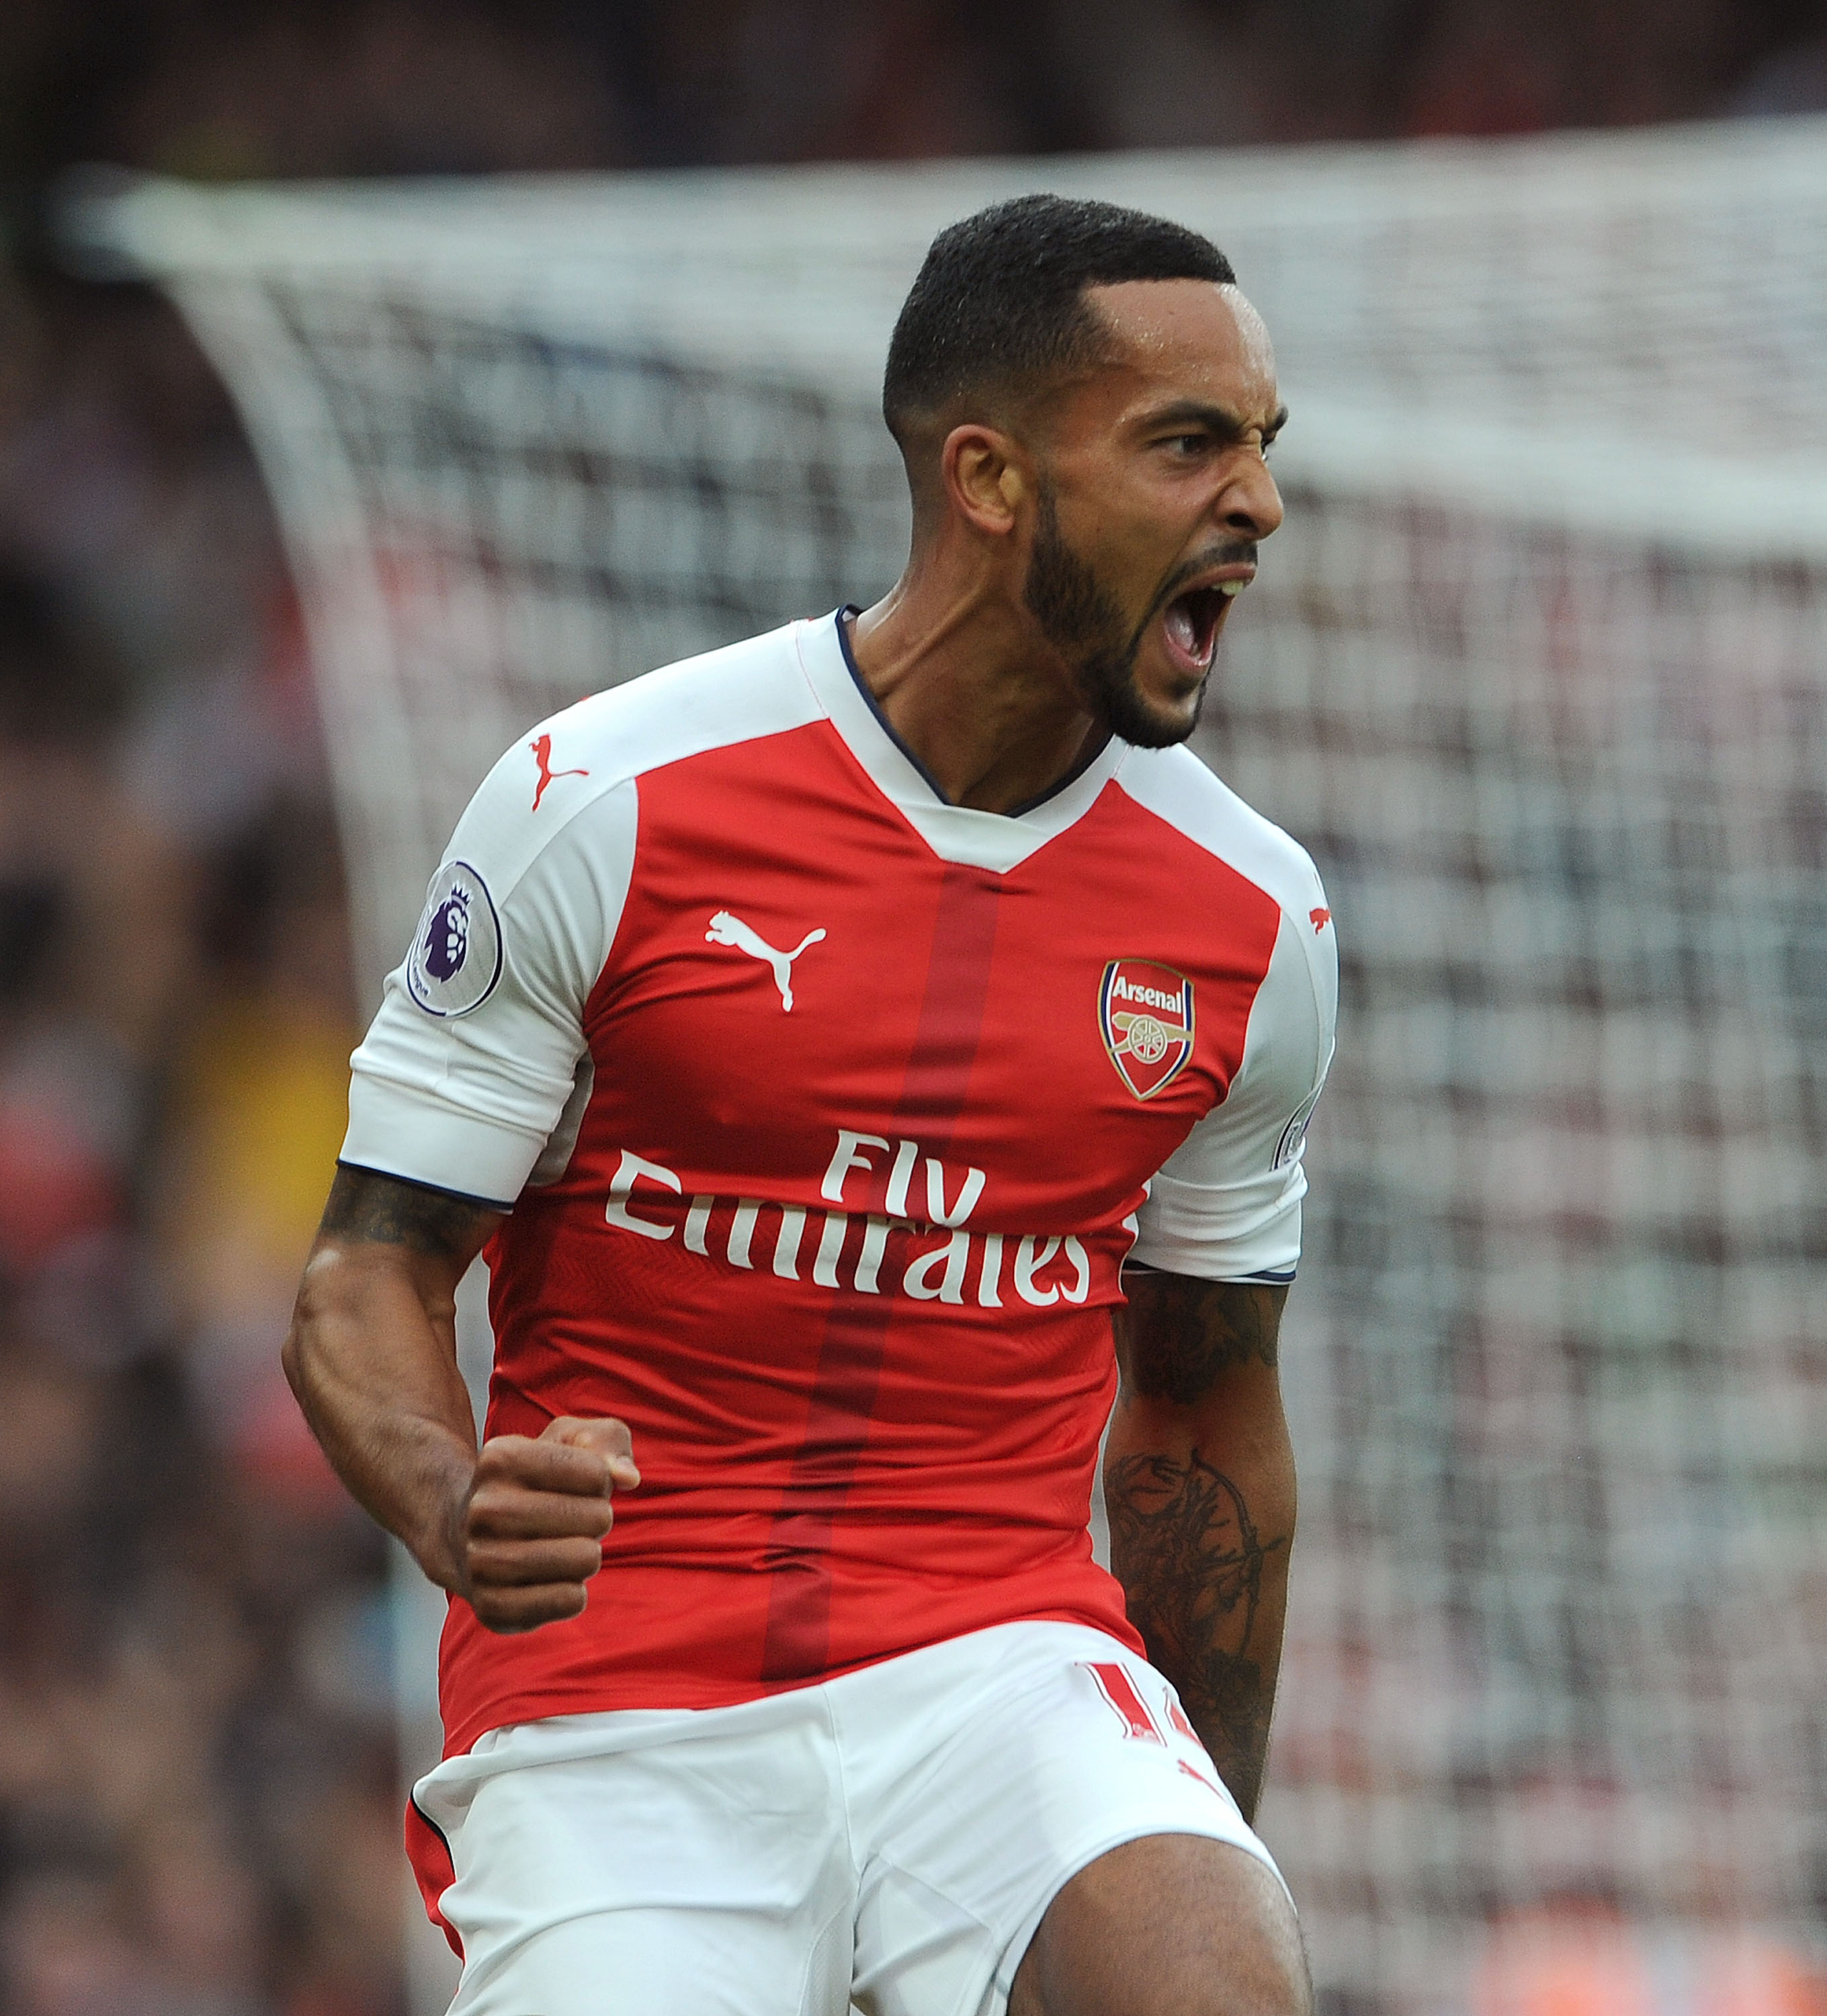 Arsenal Team News: Theo Walcott ruled out with hamstring injury as Arsene Wenger recalls Alex Oxlade-Chamberlain